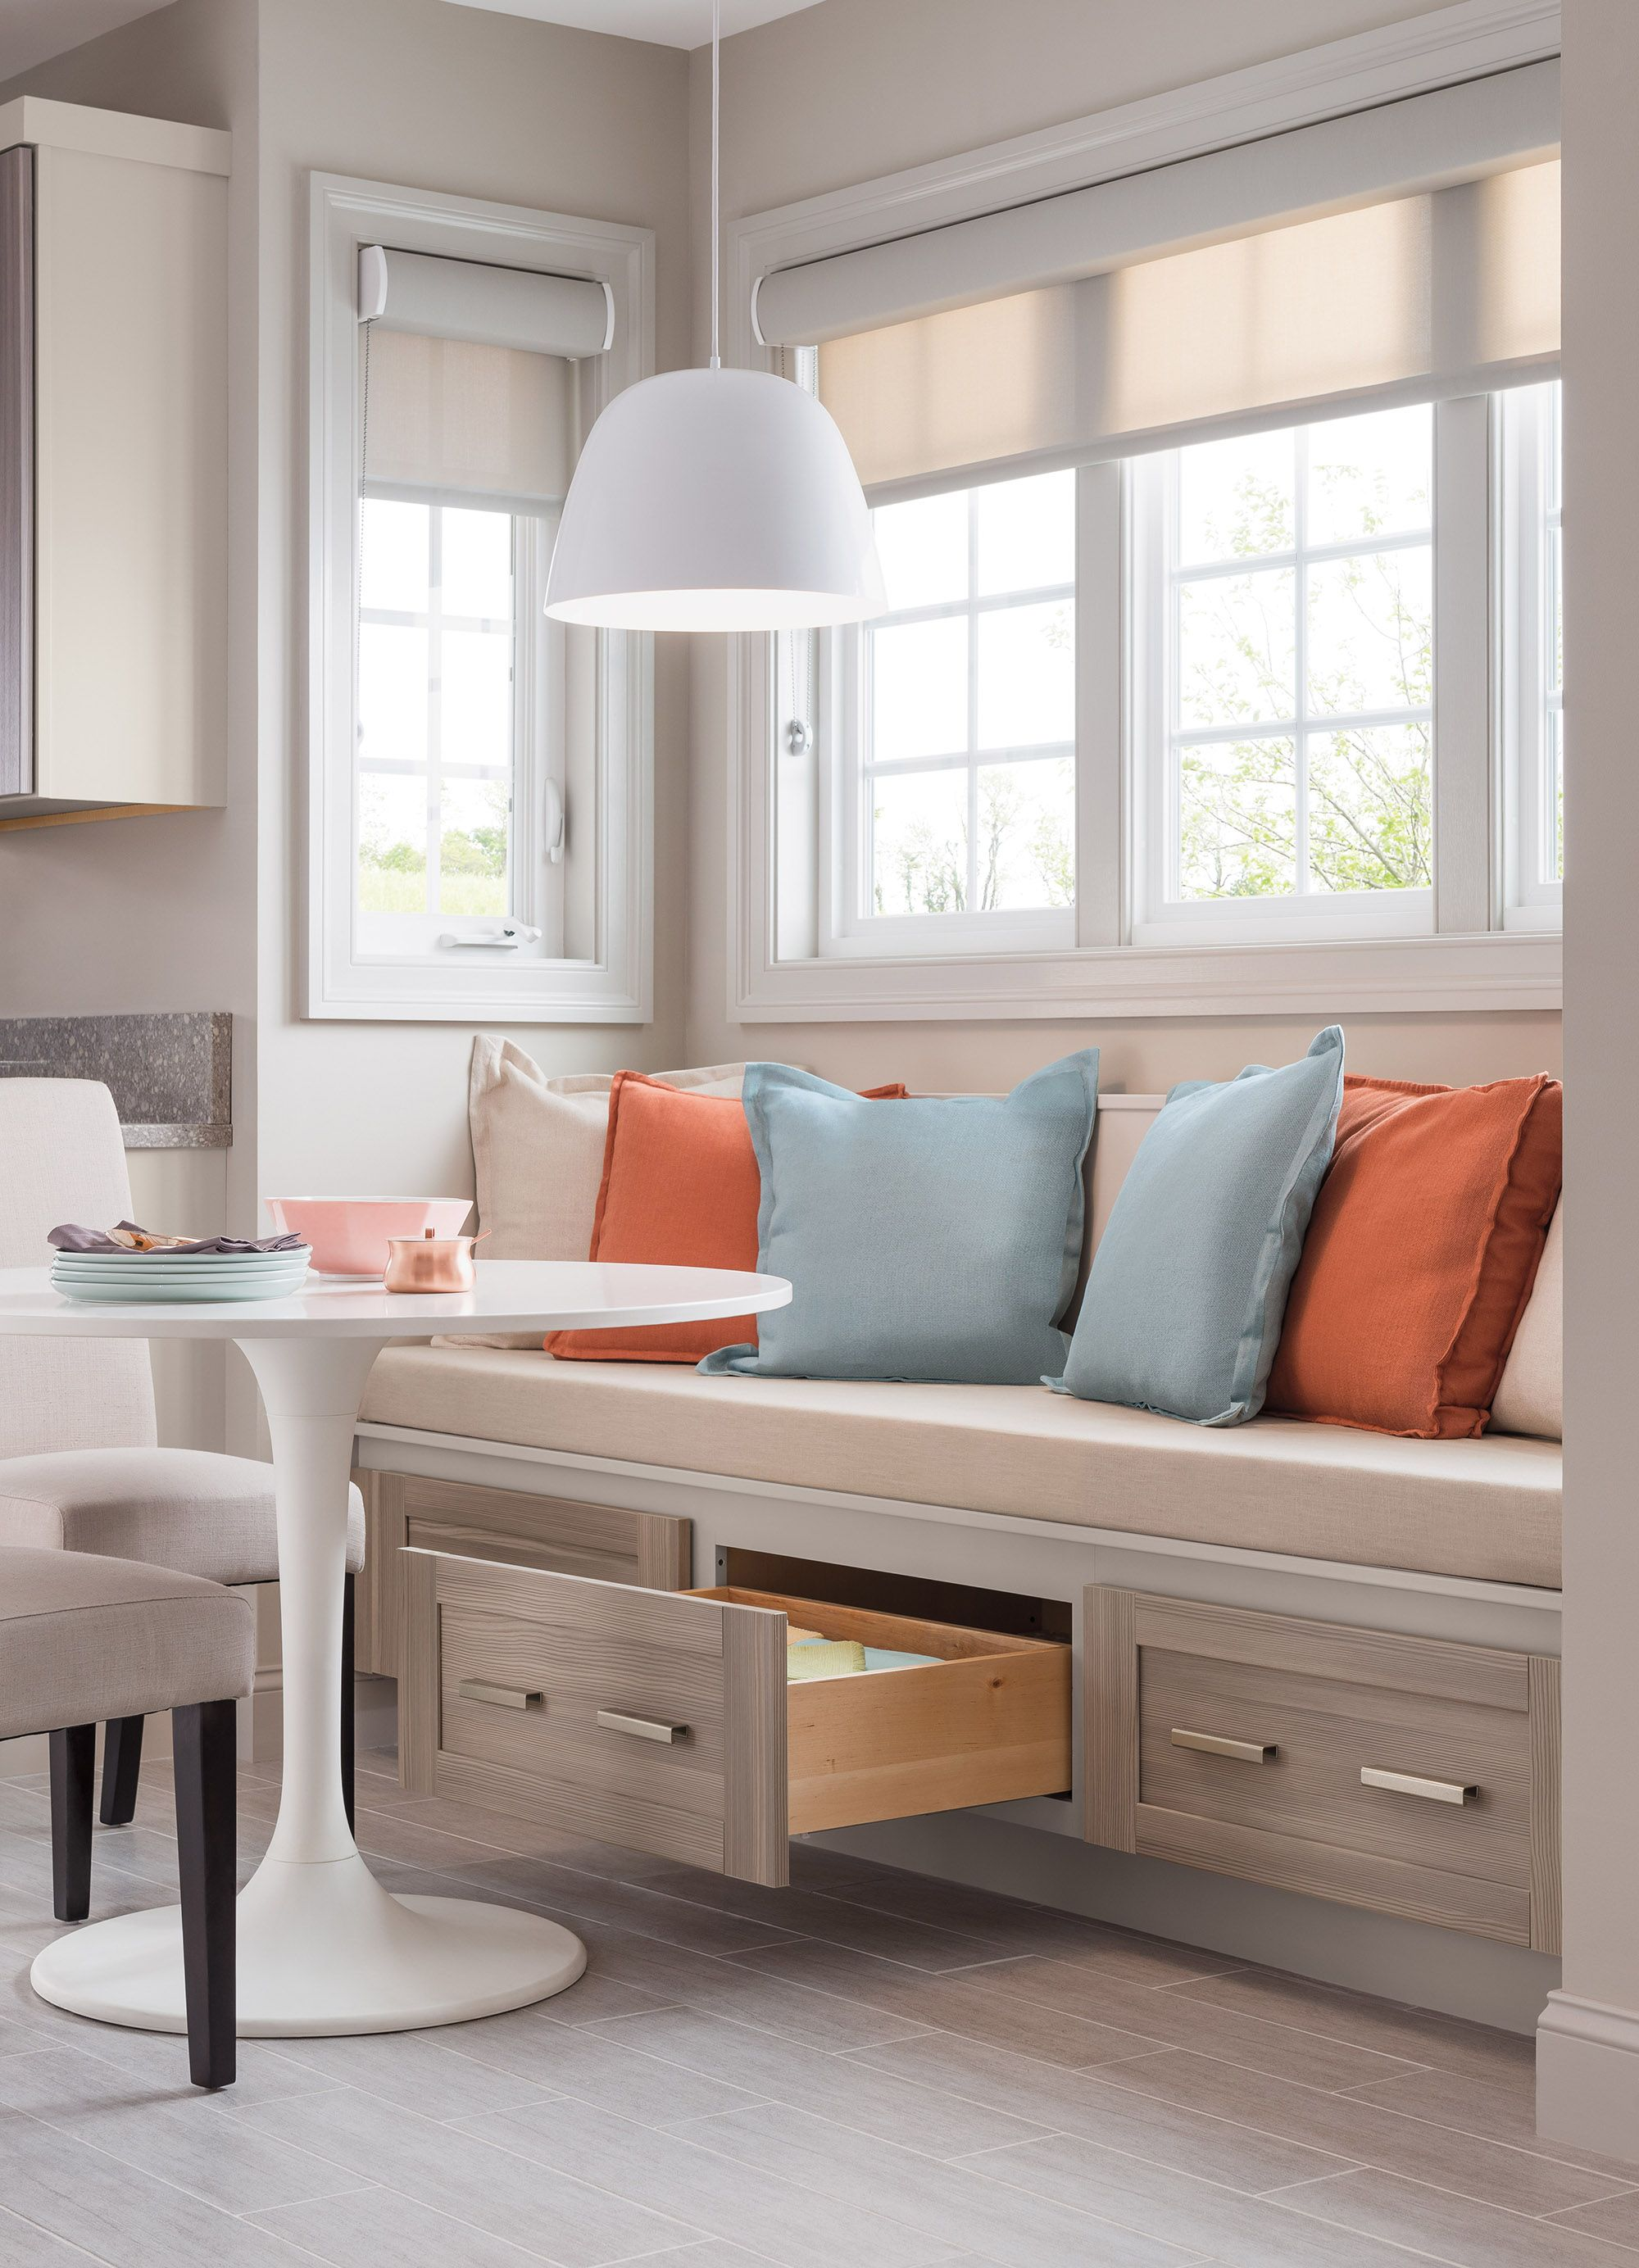 Double Up With Storage And Seating Dining Room Small Banquette Seating In Kitchen Window Seat Kitchen